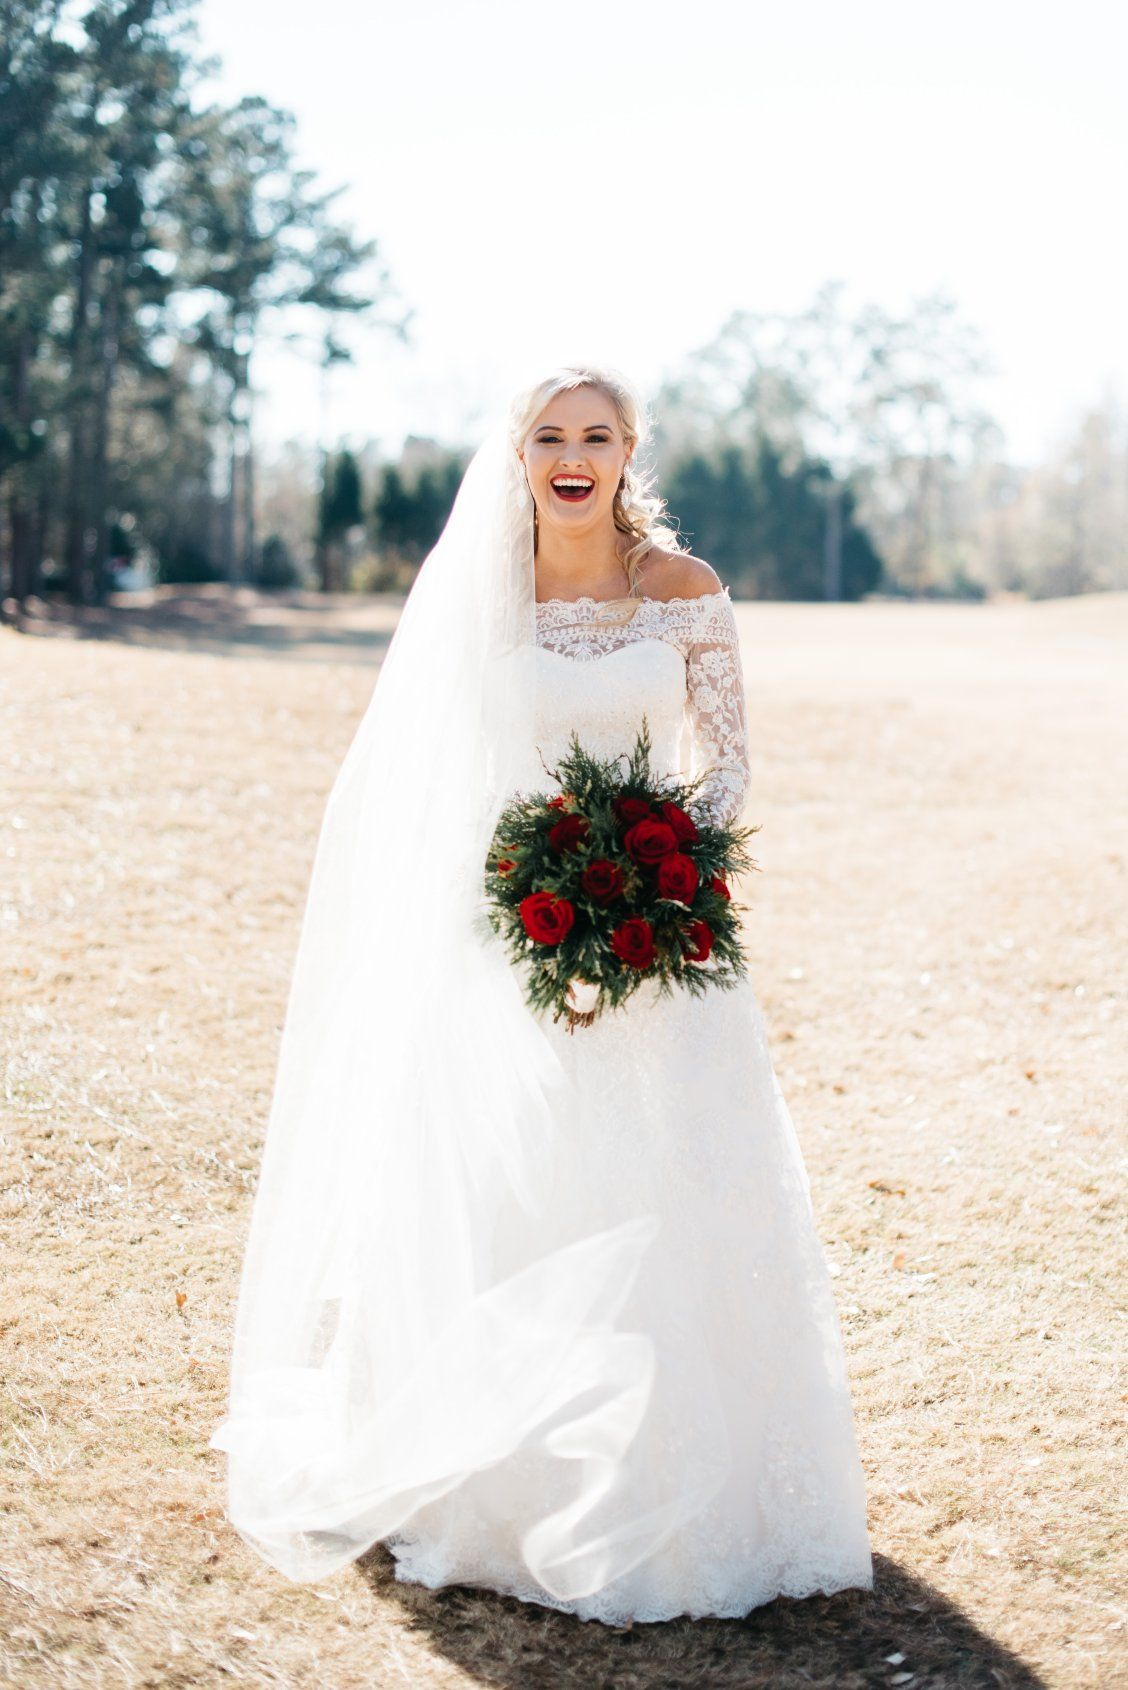 Davidus bridal bride is stunning for her winter wedding in this off